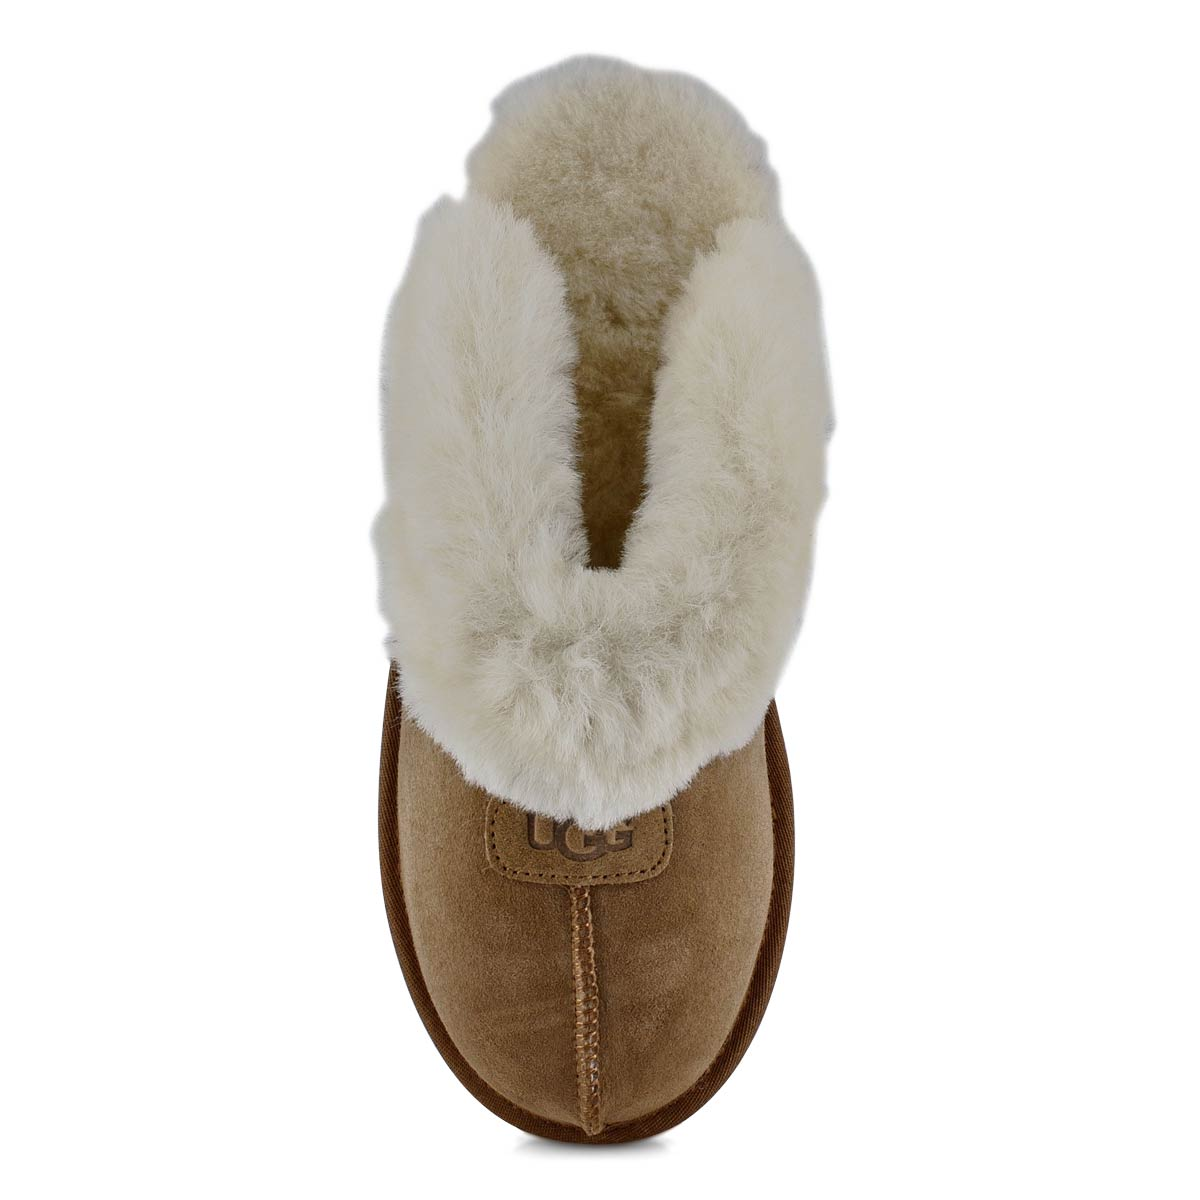 Lds Coquette chestnut sheepskin slipper